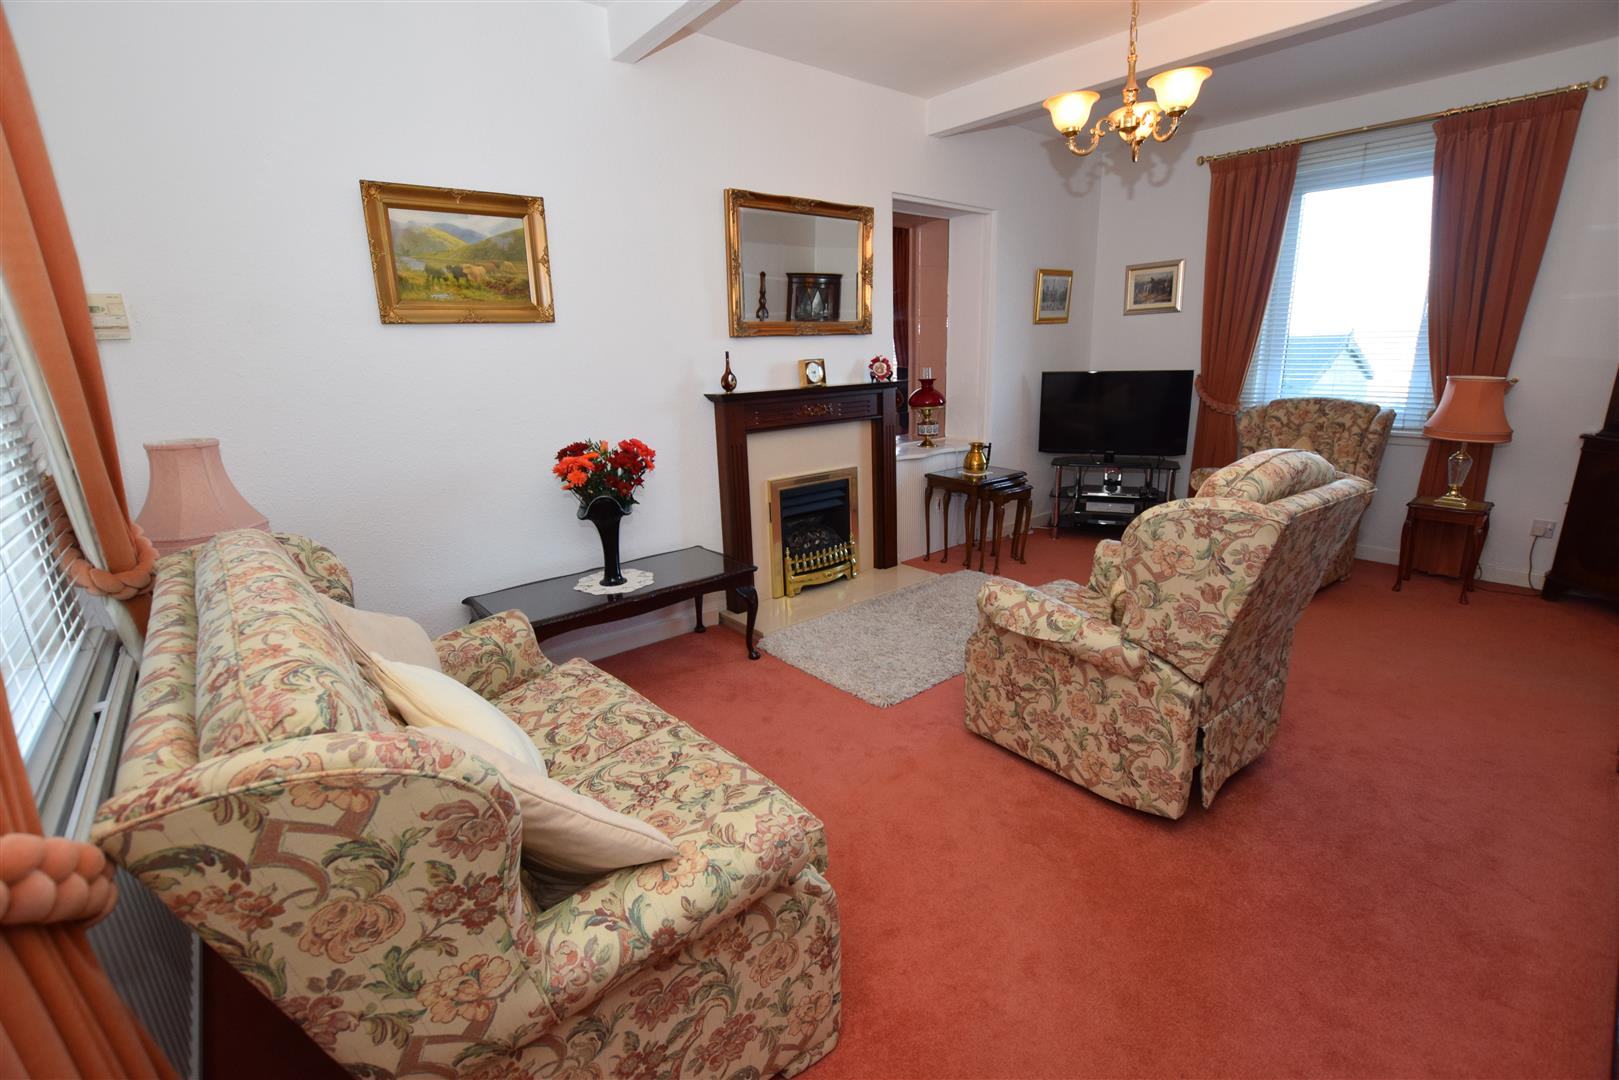 10, Glenturret Terrace, Perthshire, PH2 0AR, UK